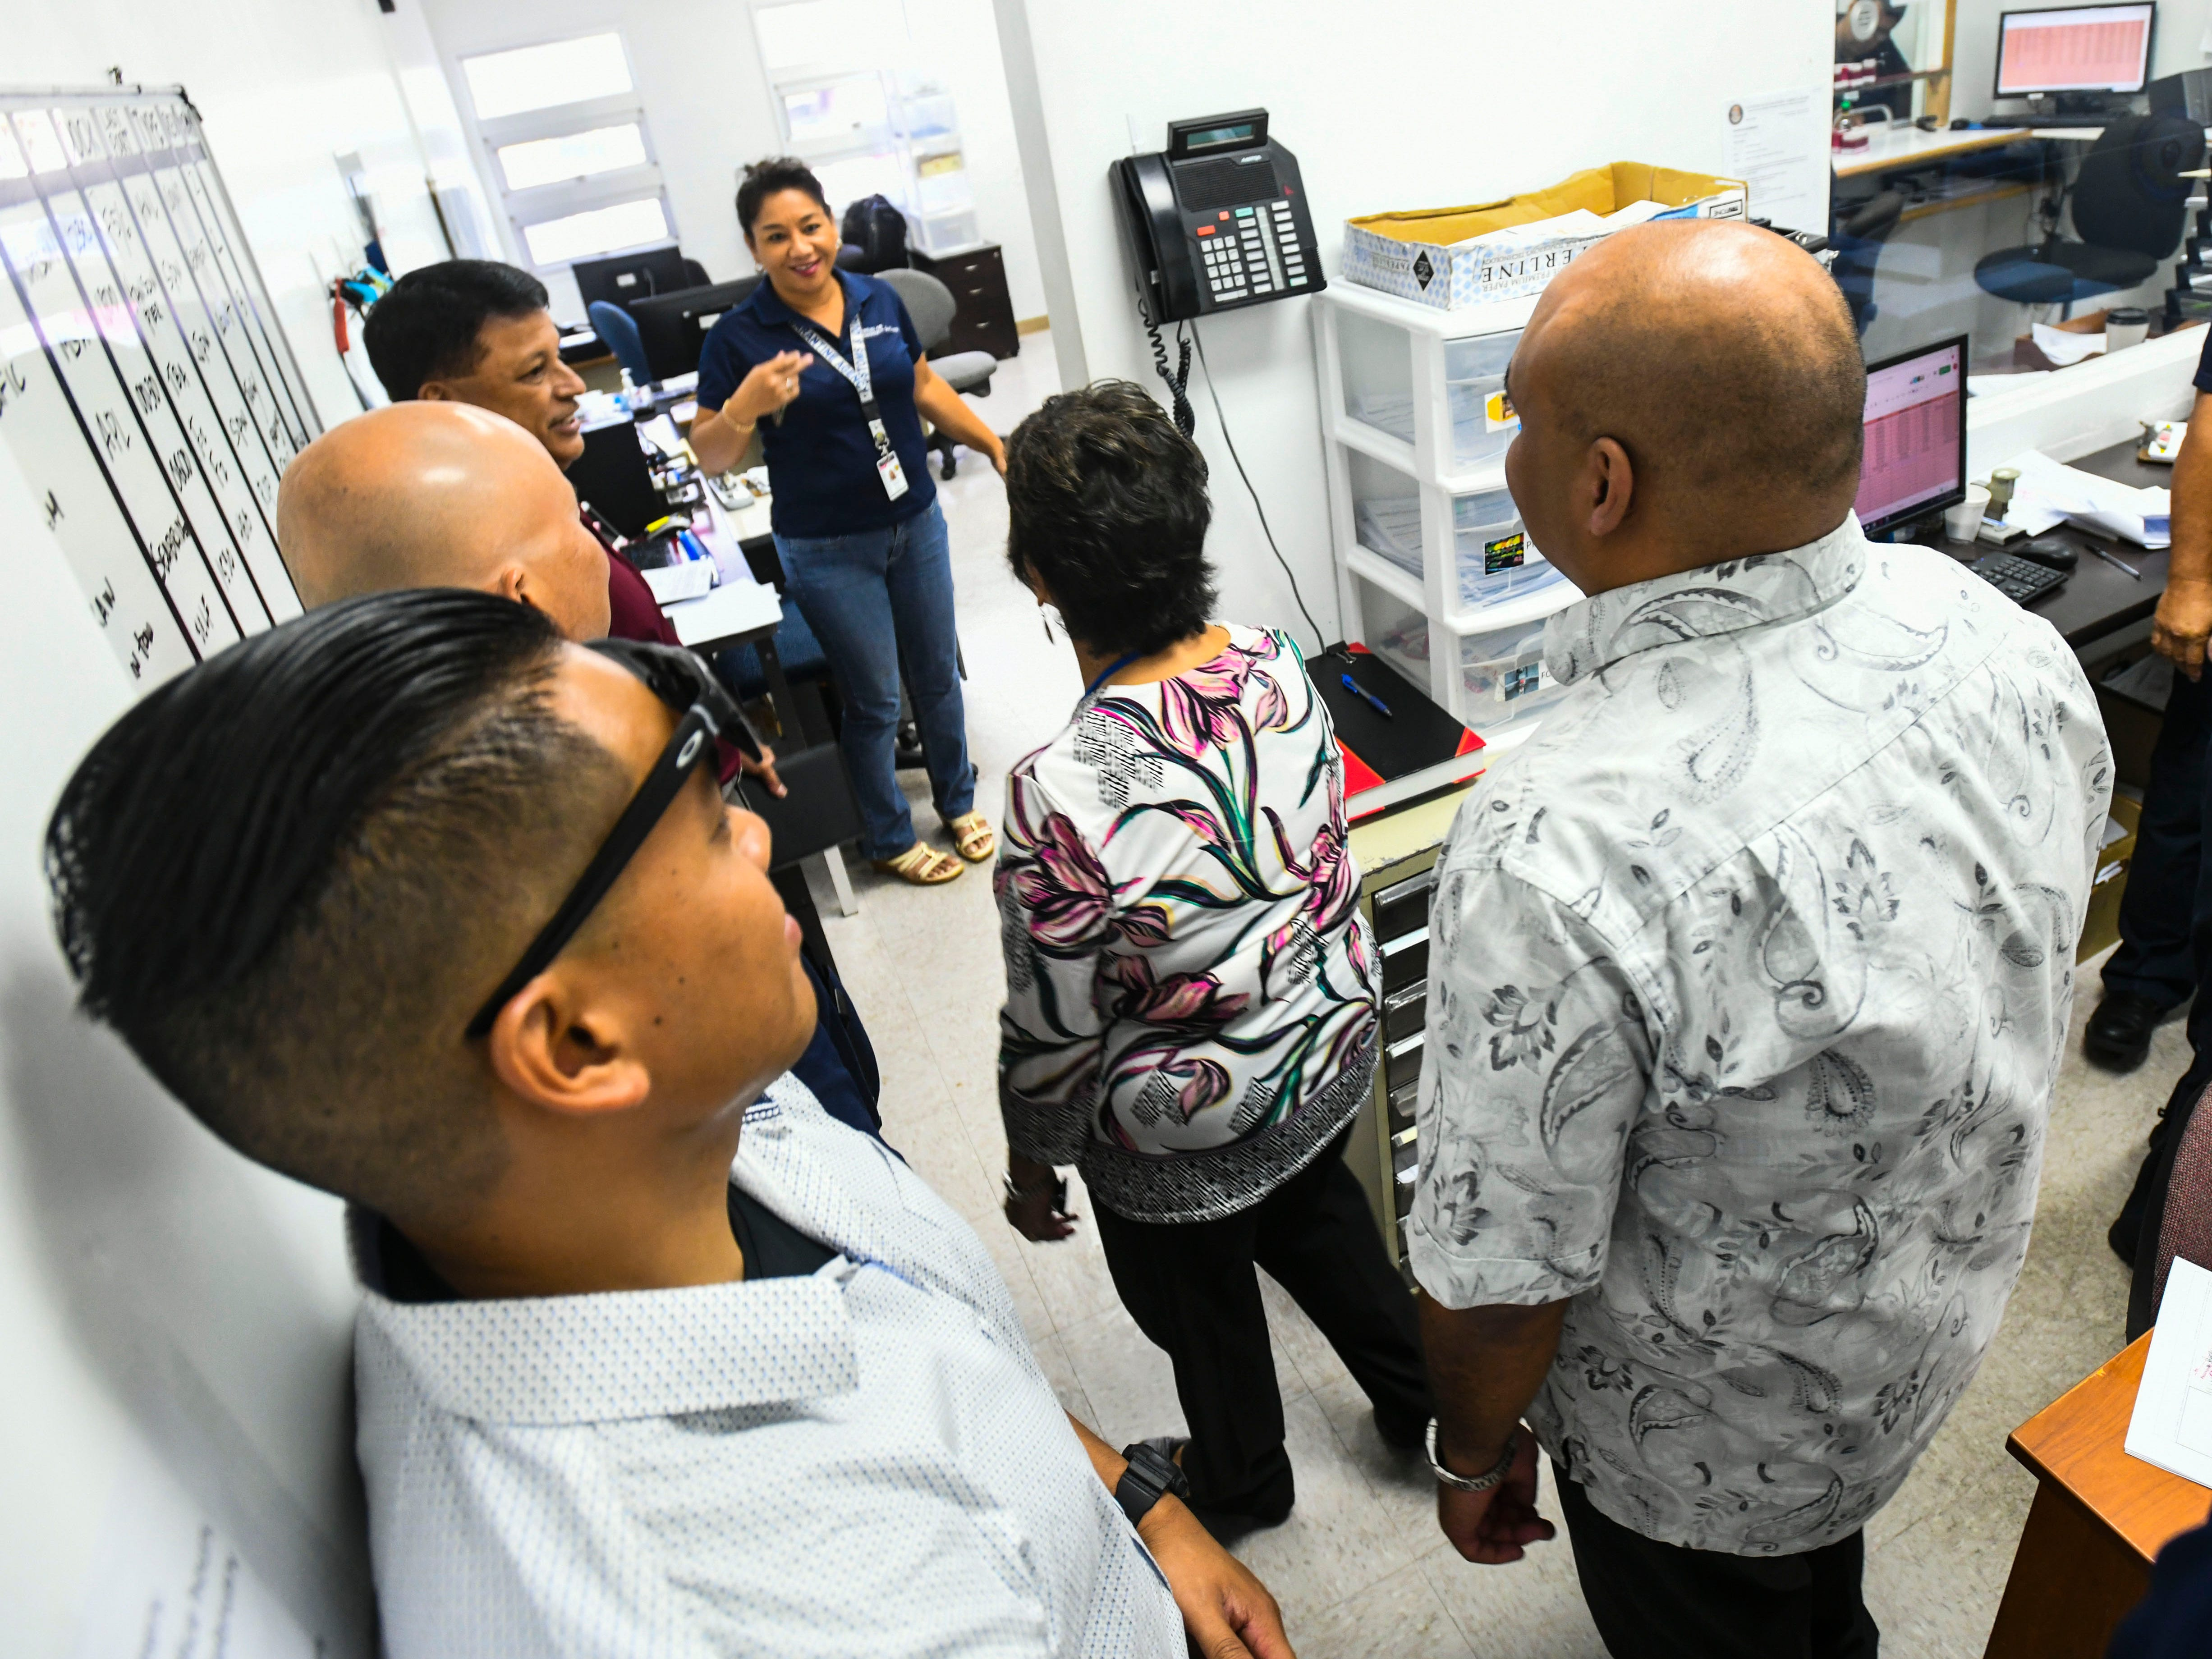 Gov. Lou Leon Guerrero, Lt. Gov. Josh Tenorio and others, tour the Customs office in the administration building at the Jose D. Leon Guerrero Commercial Port in Piti on Wednesday, March 13, 2019.